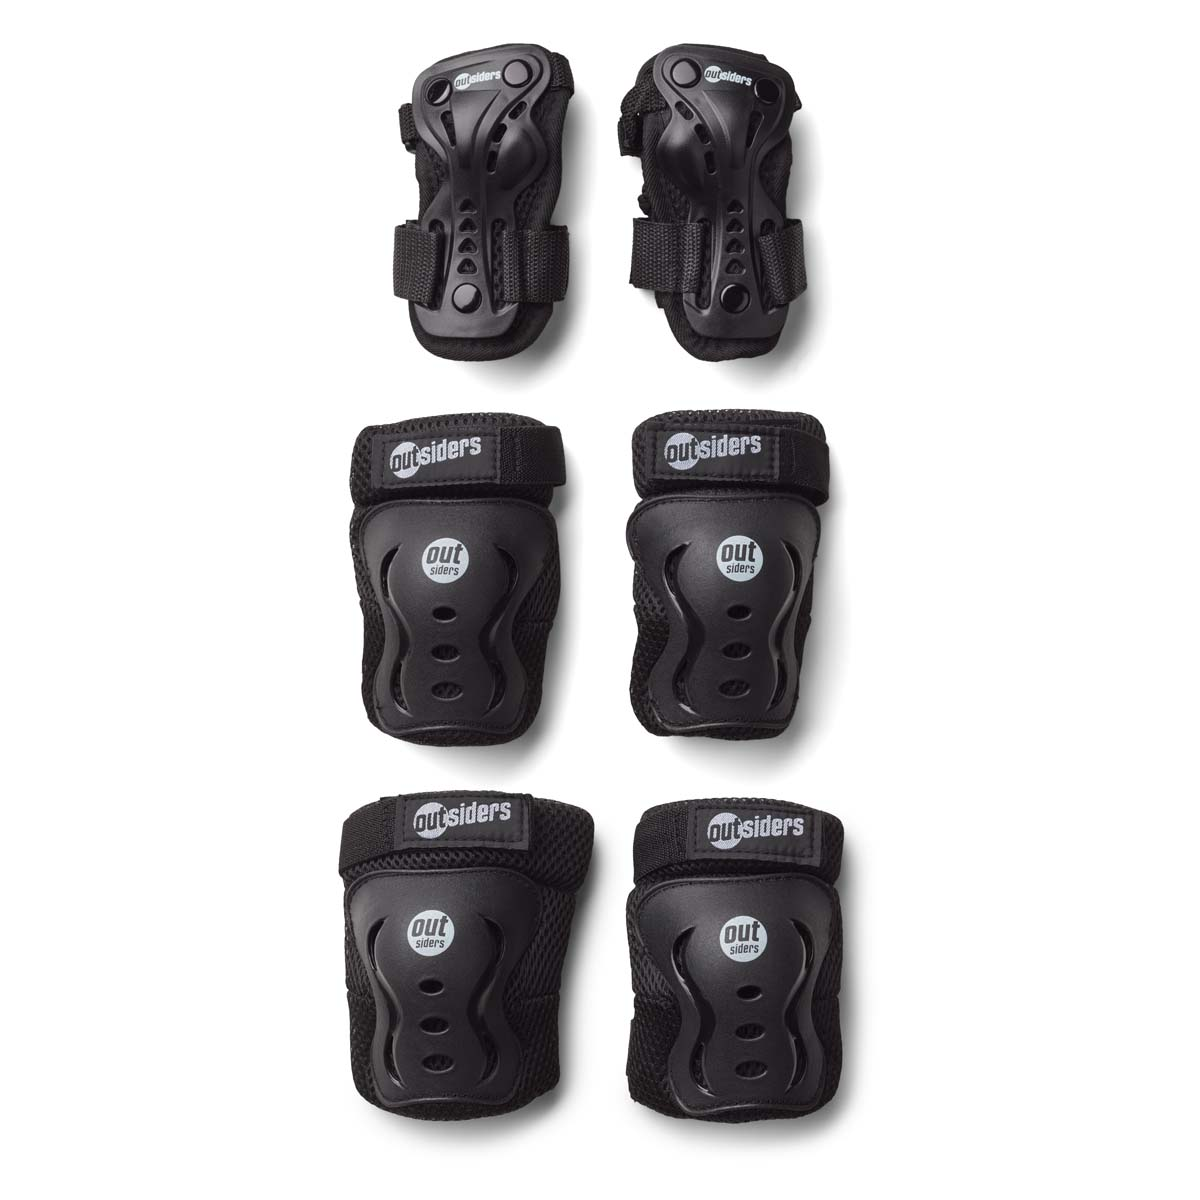 Outsiders - Deluxe Safety Equipment Set - Wrist, Knee, Elbow (M)